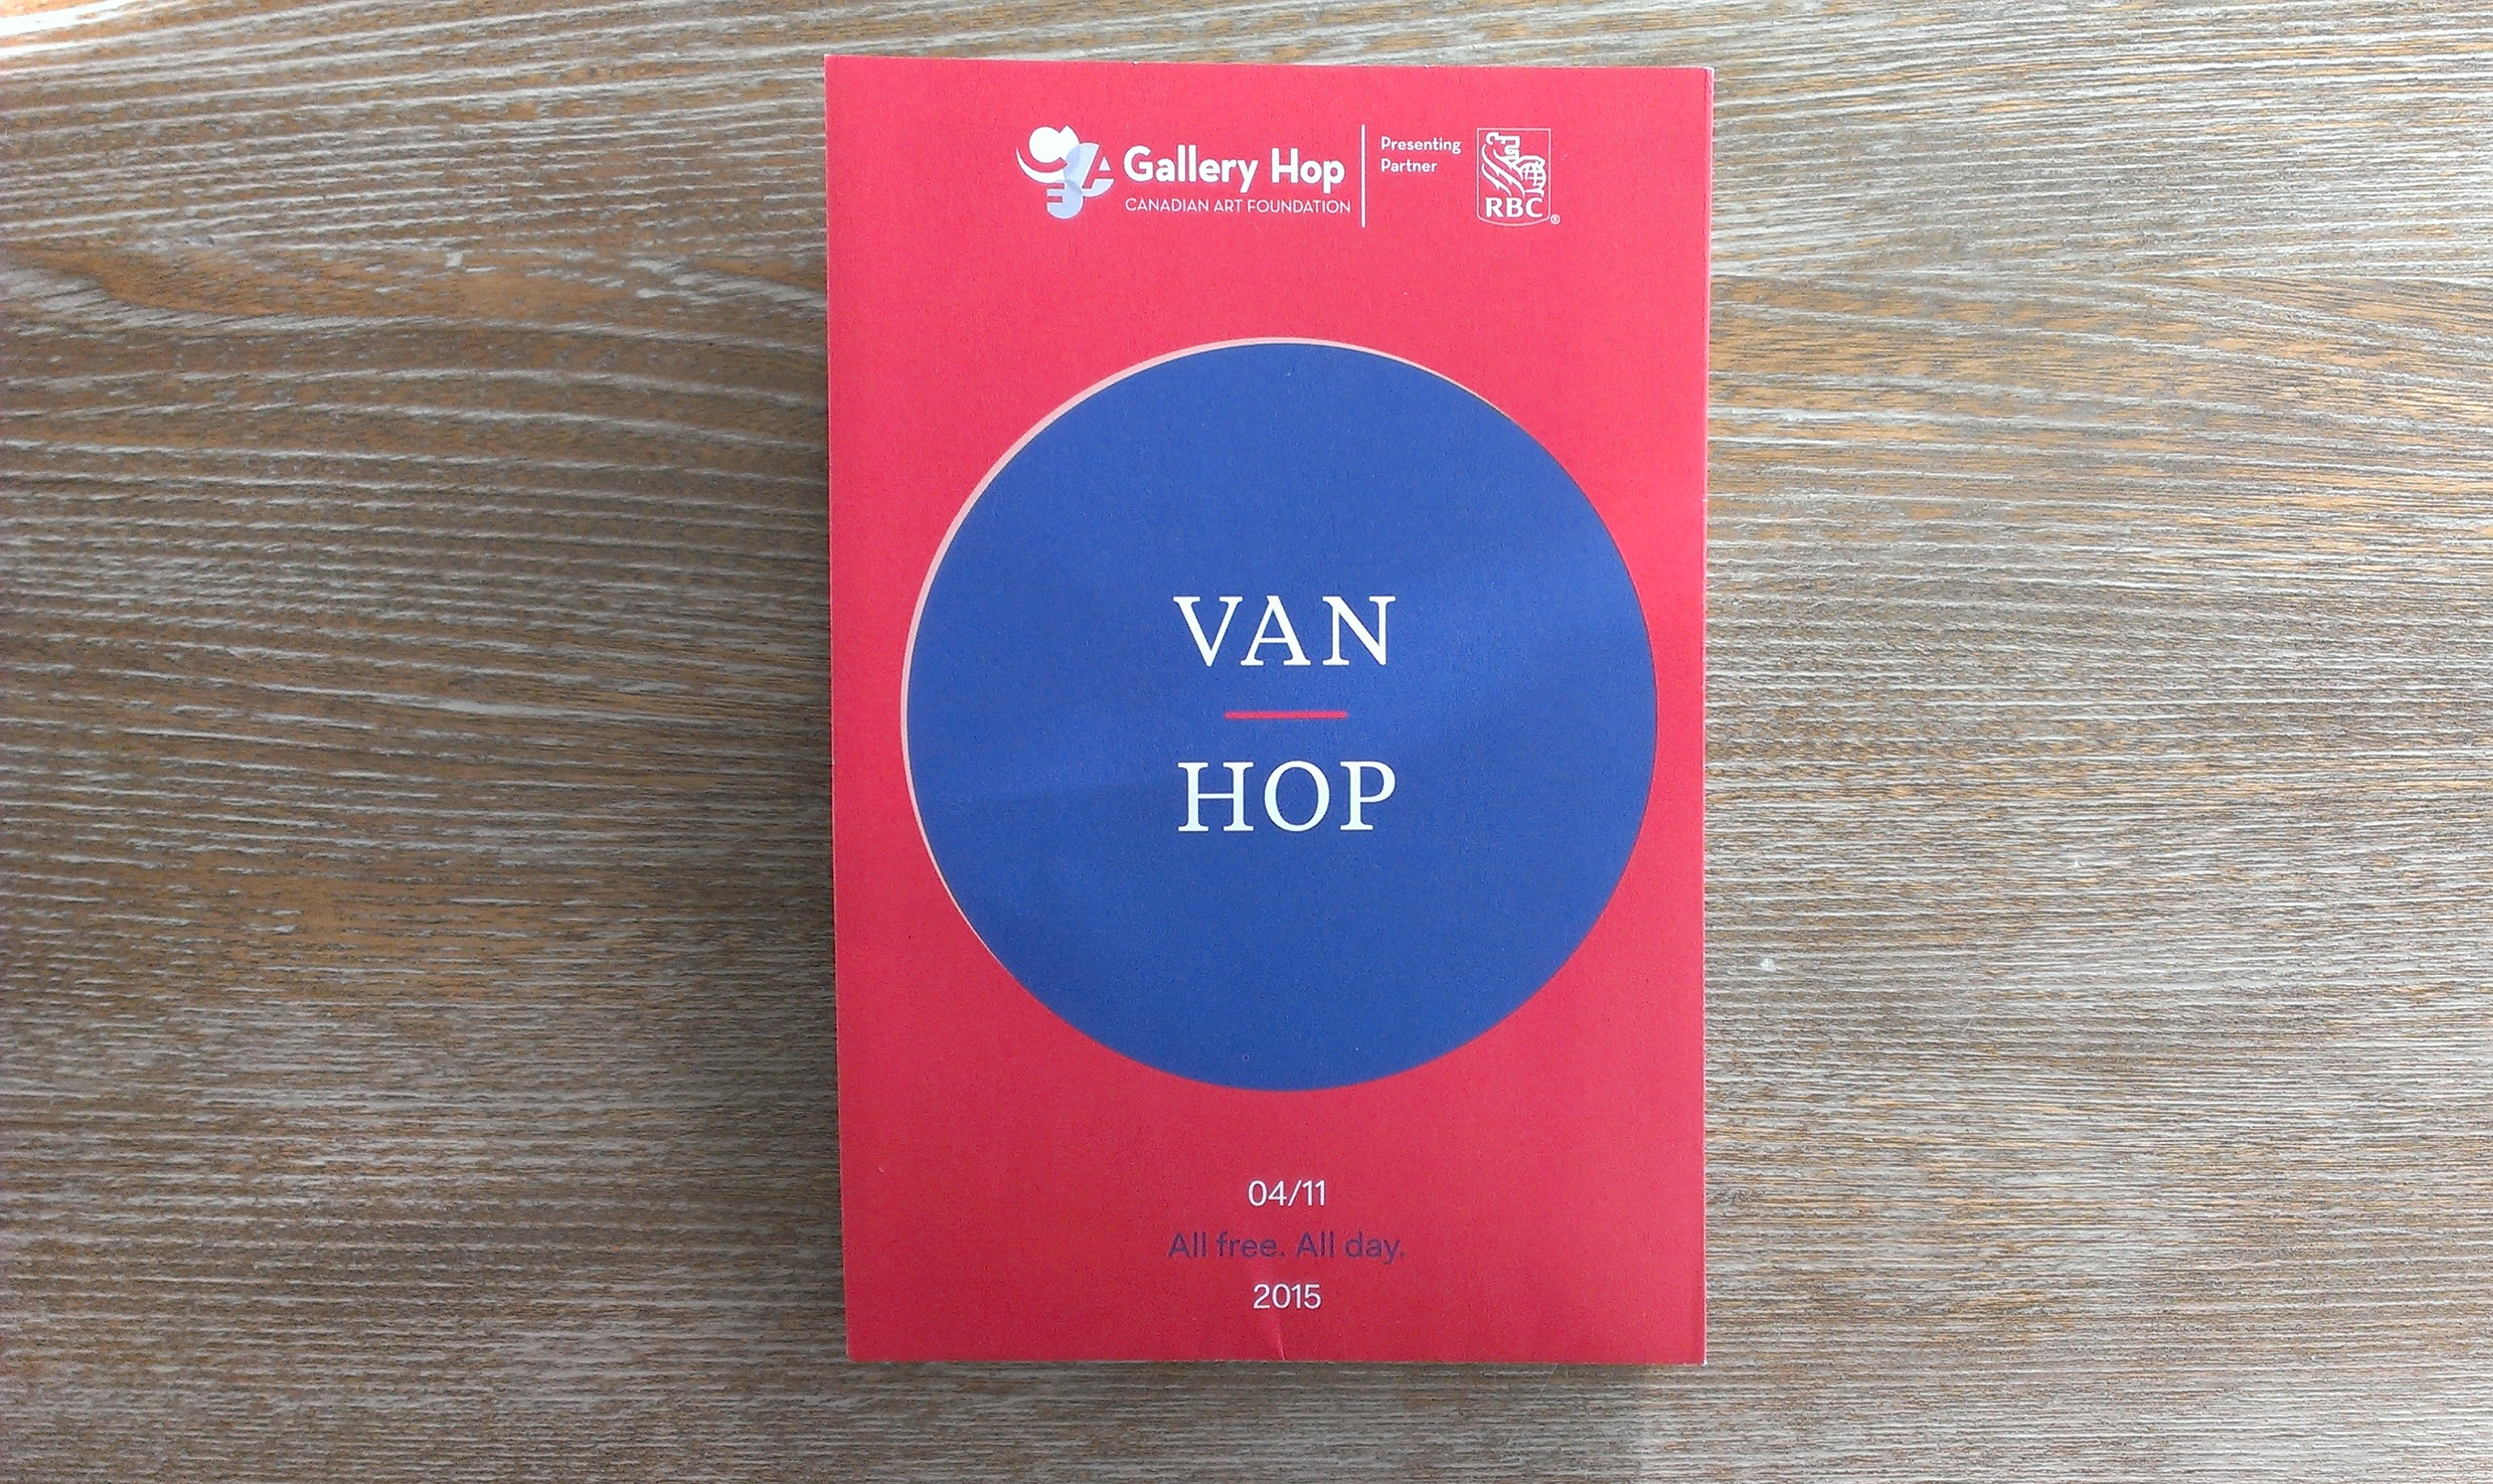 VAN HOP long image